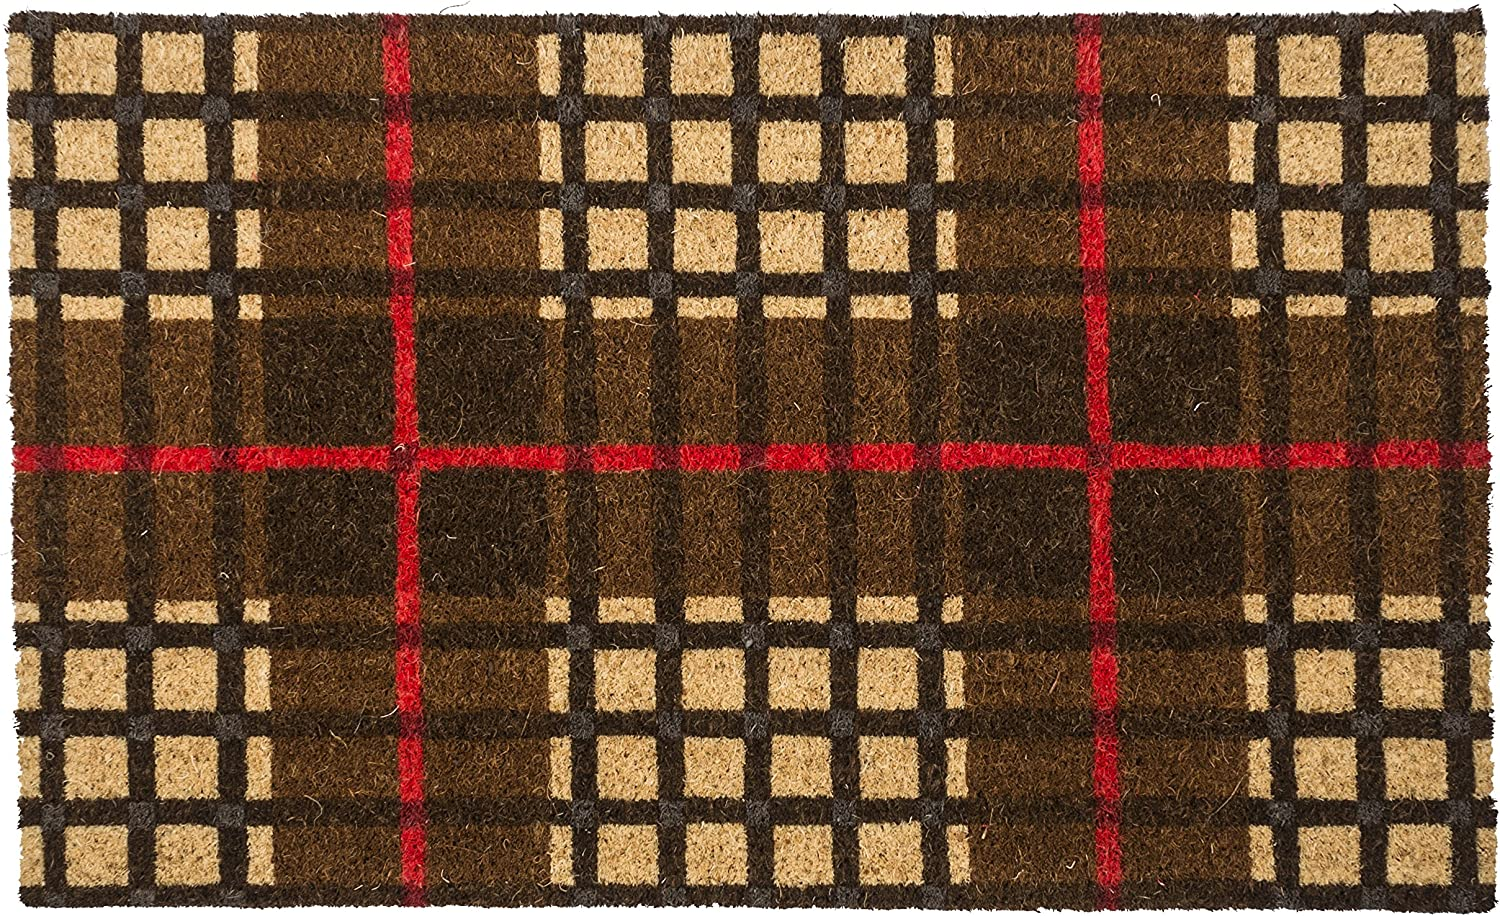 Entryways Plaid Non Slip Coir Doormat, Brown Red